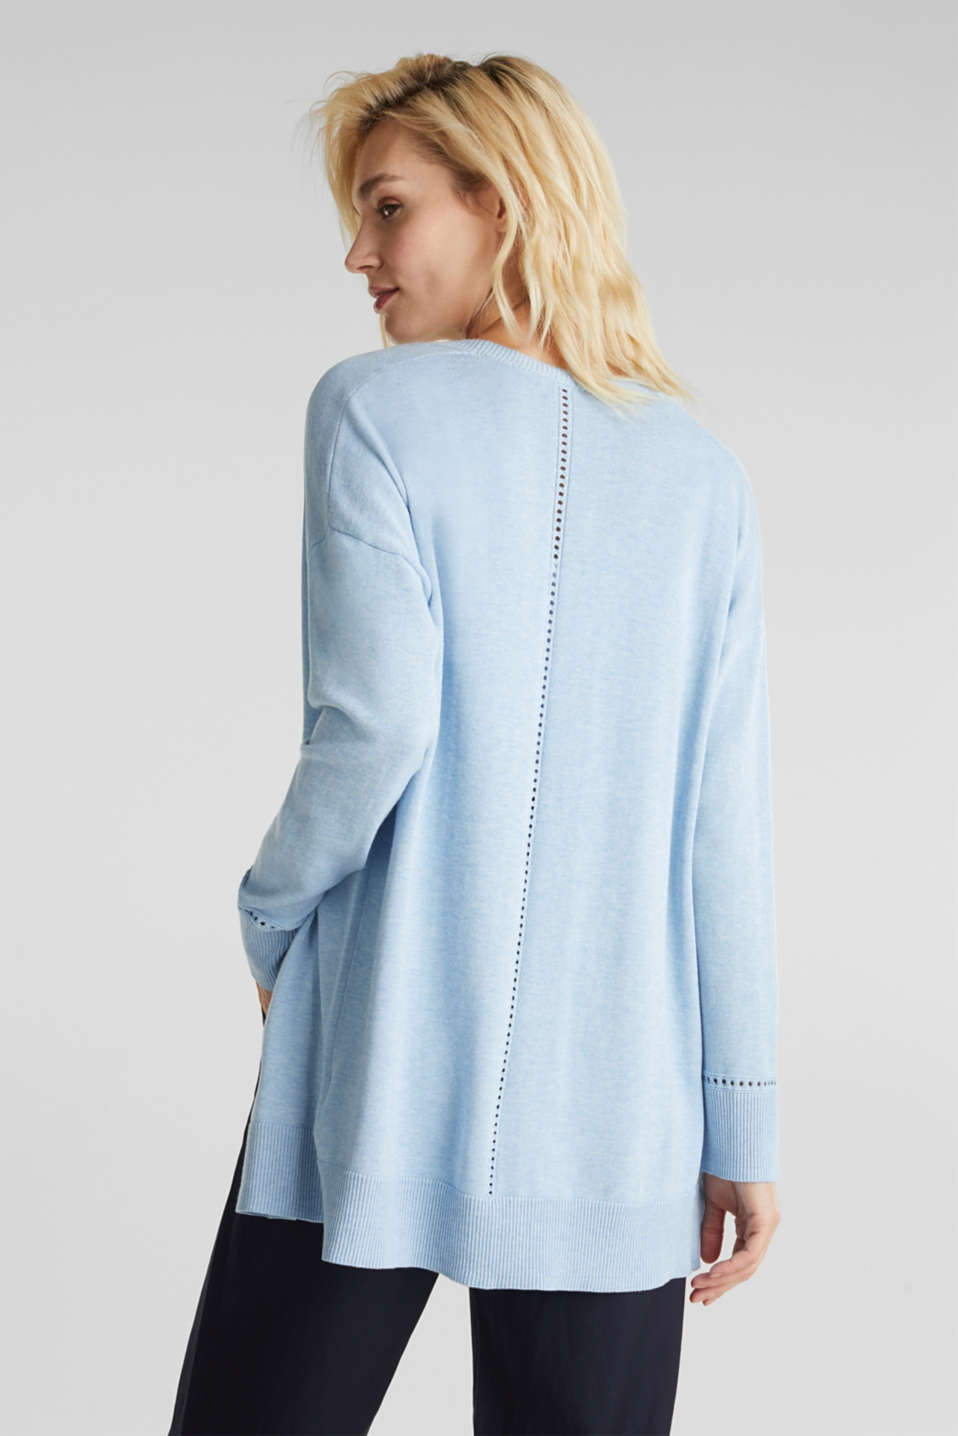 Cardigan with open-work pattern details, LIGHT BLUE, detail image number 3